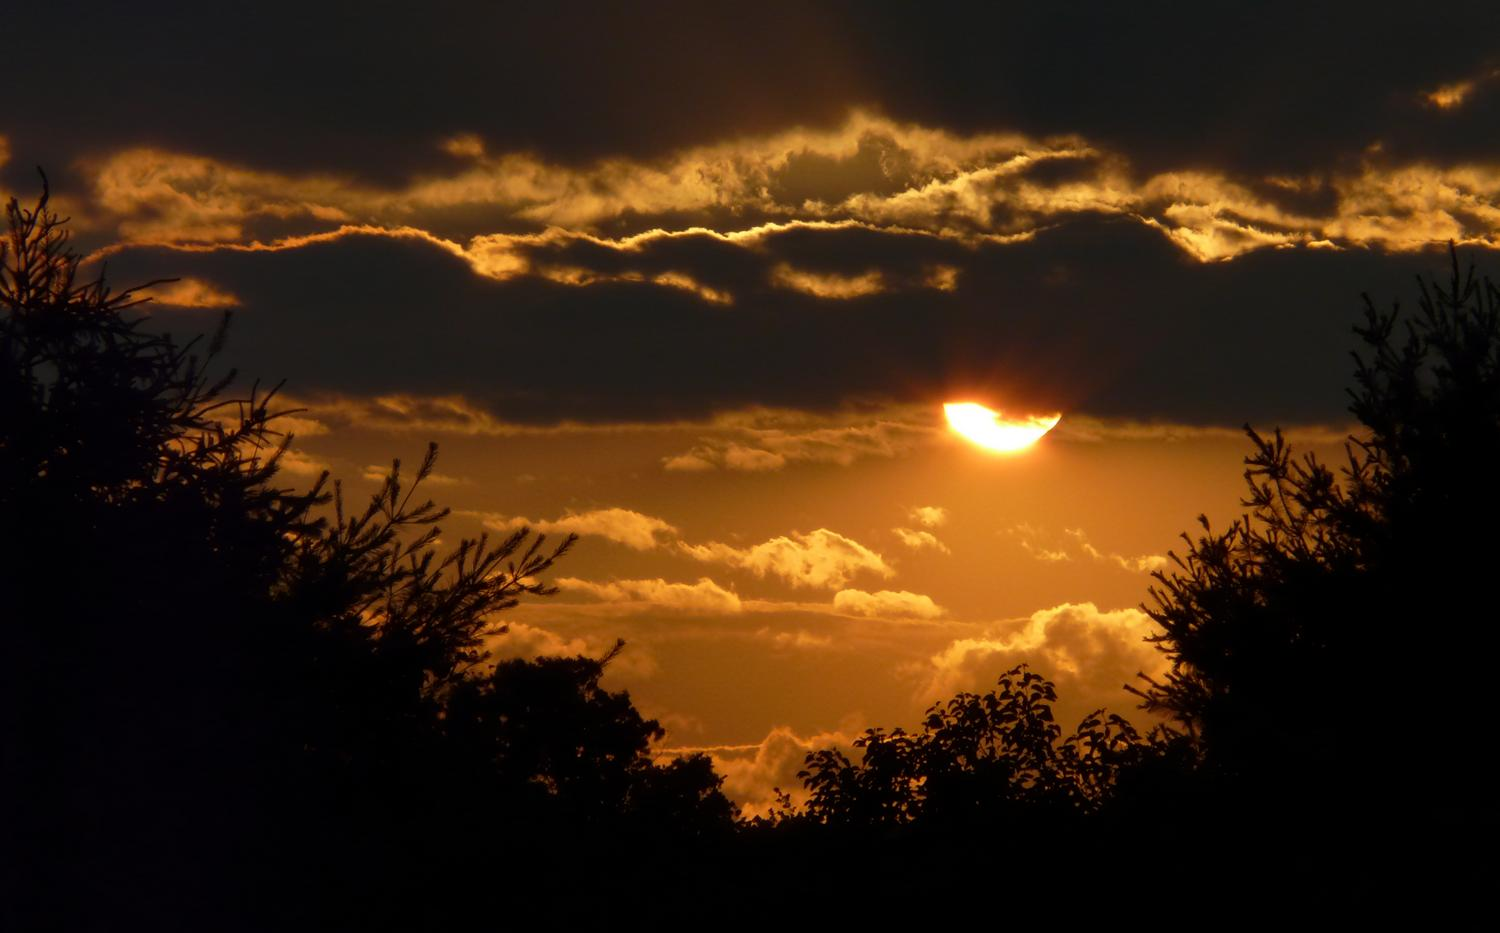 close-up of the sun and the sky - Another sunset behind my house - Panasonic DMC-FZ18 - - art  - photography - by Tony Karp